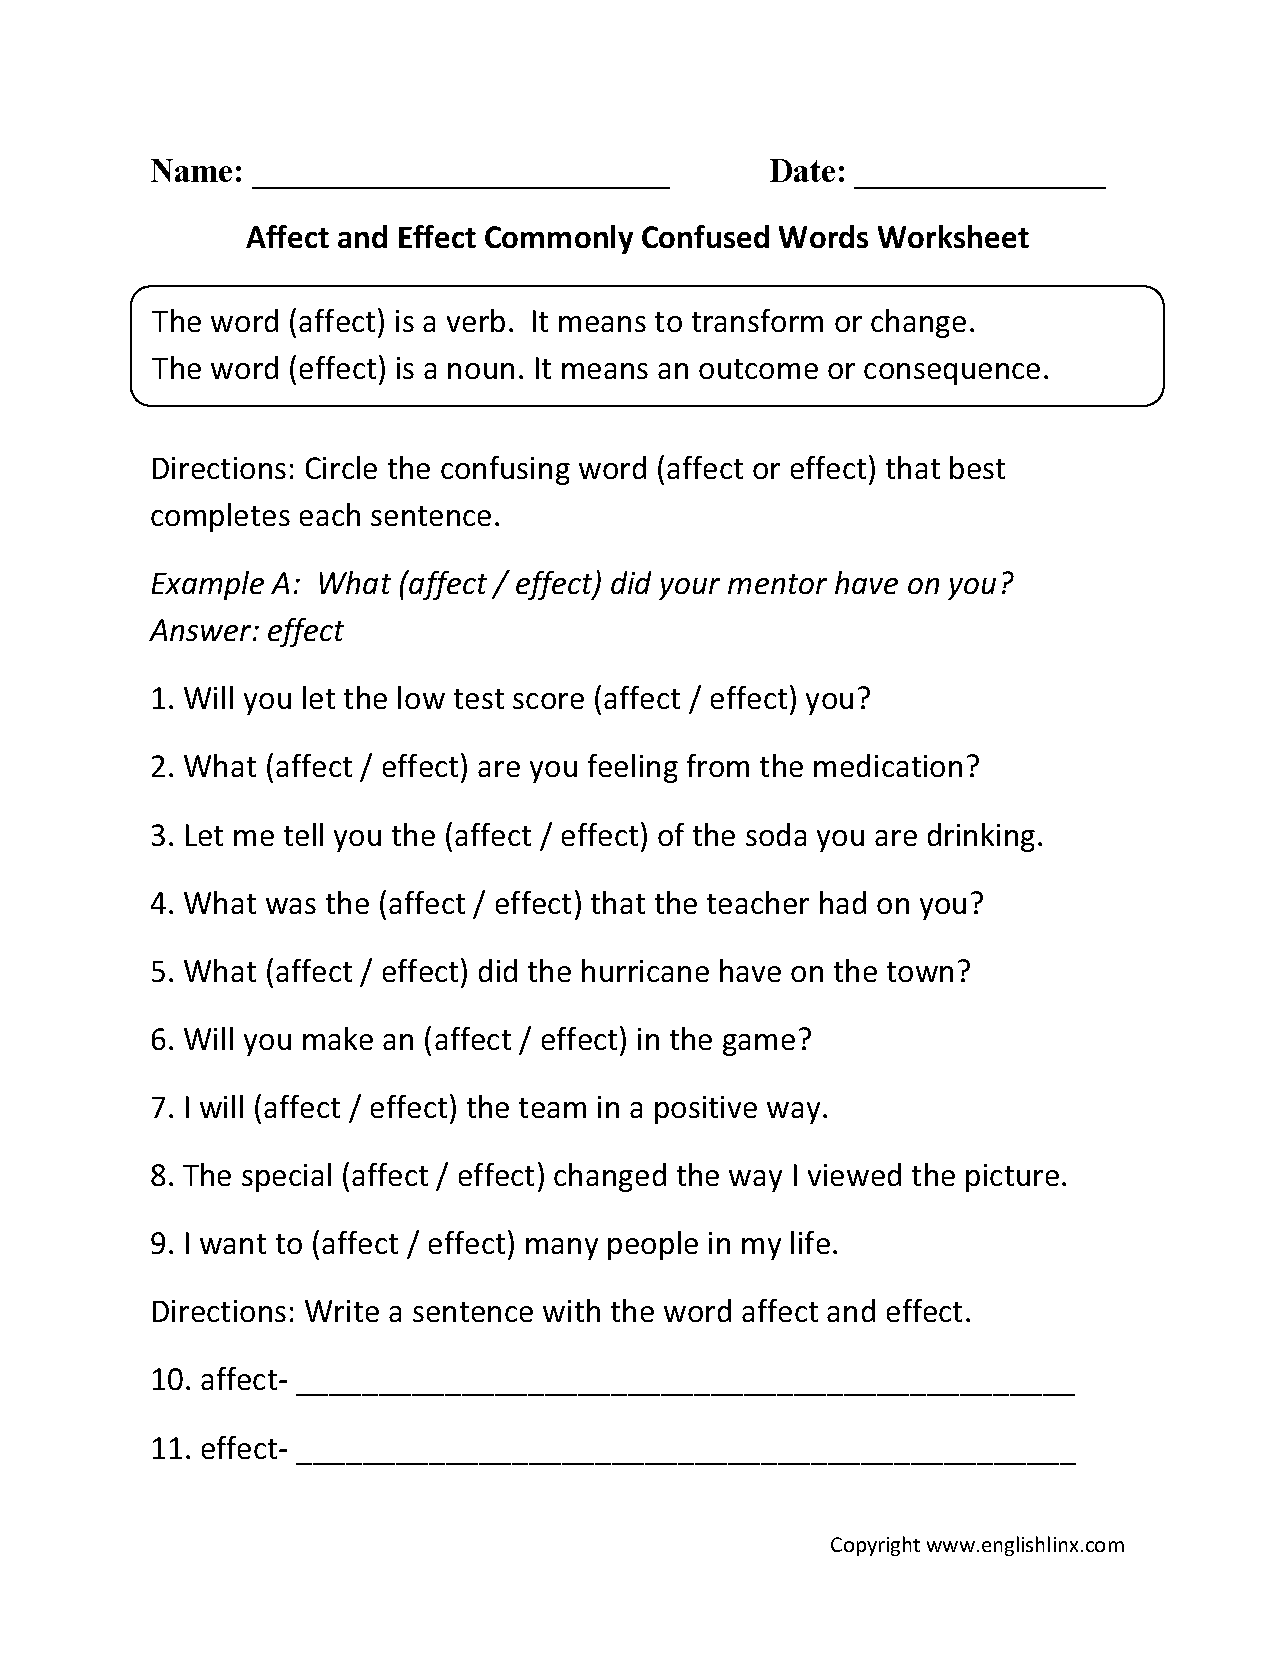 Affect And Effect Commonly Confused Words Worksheets